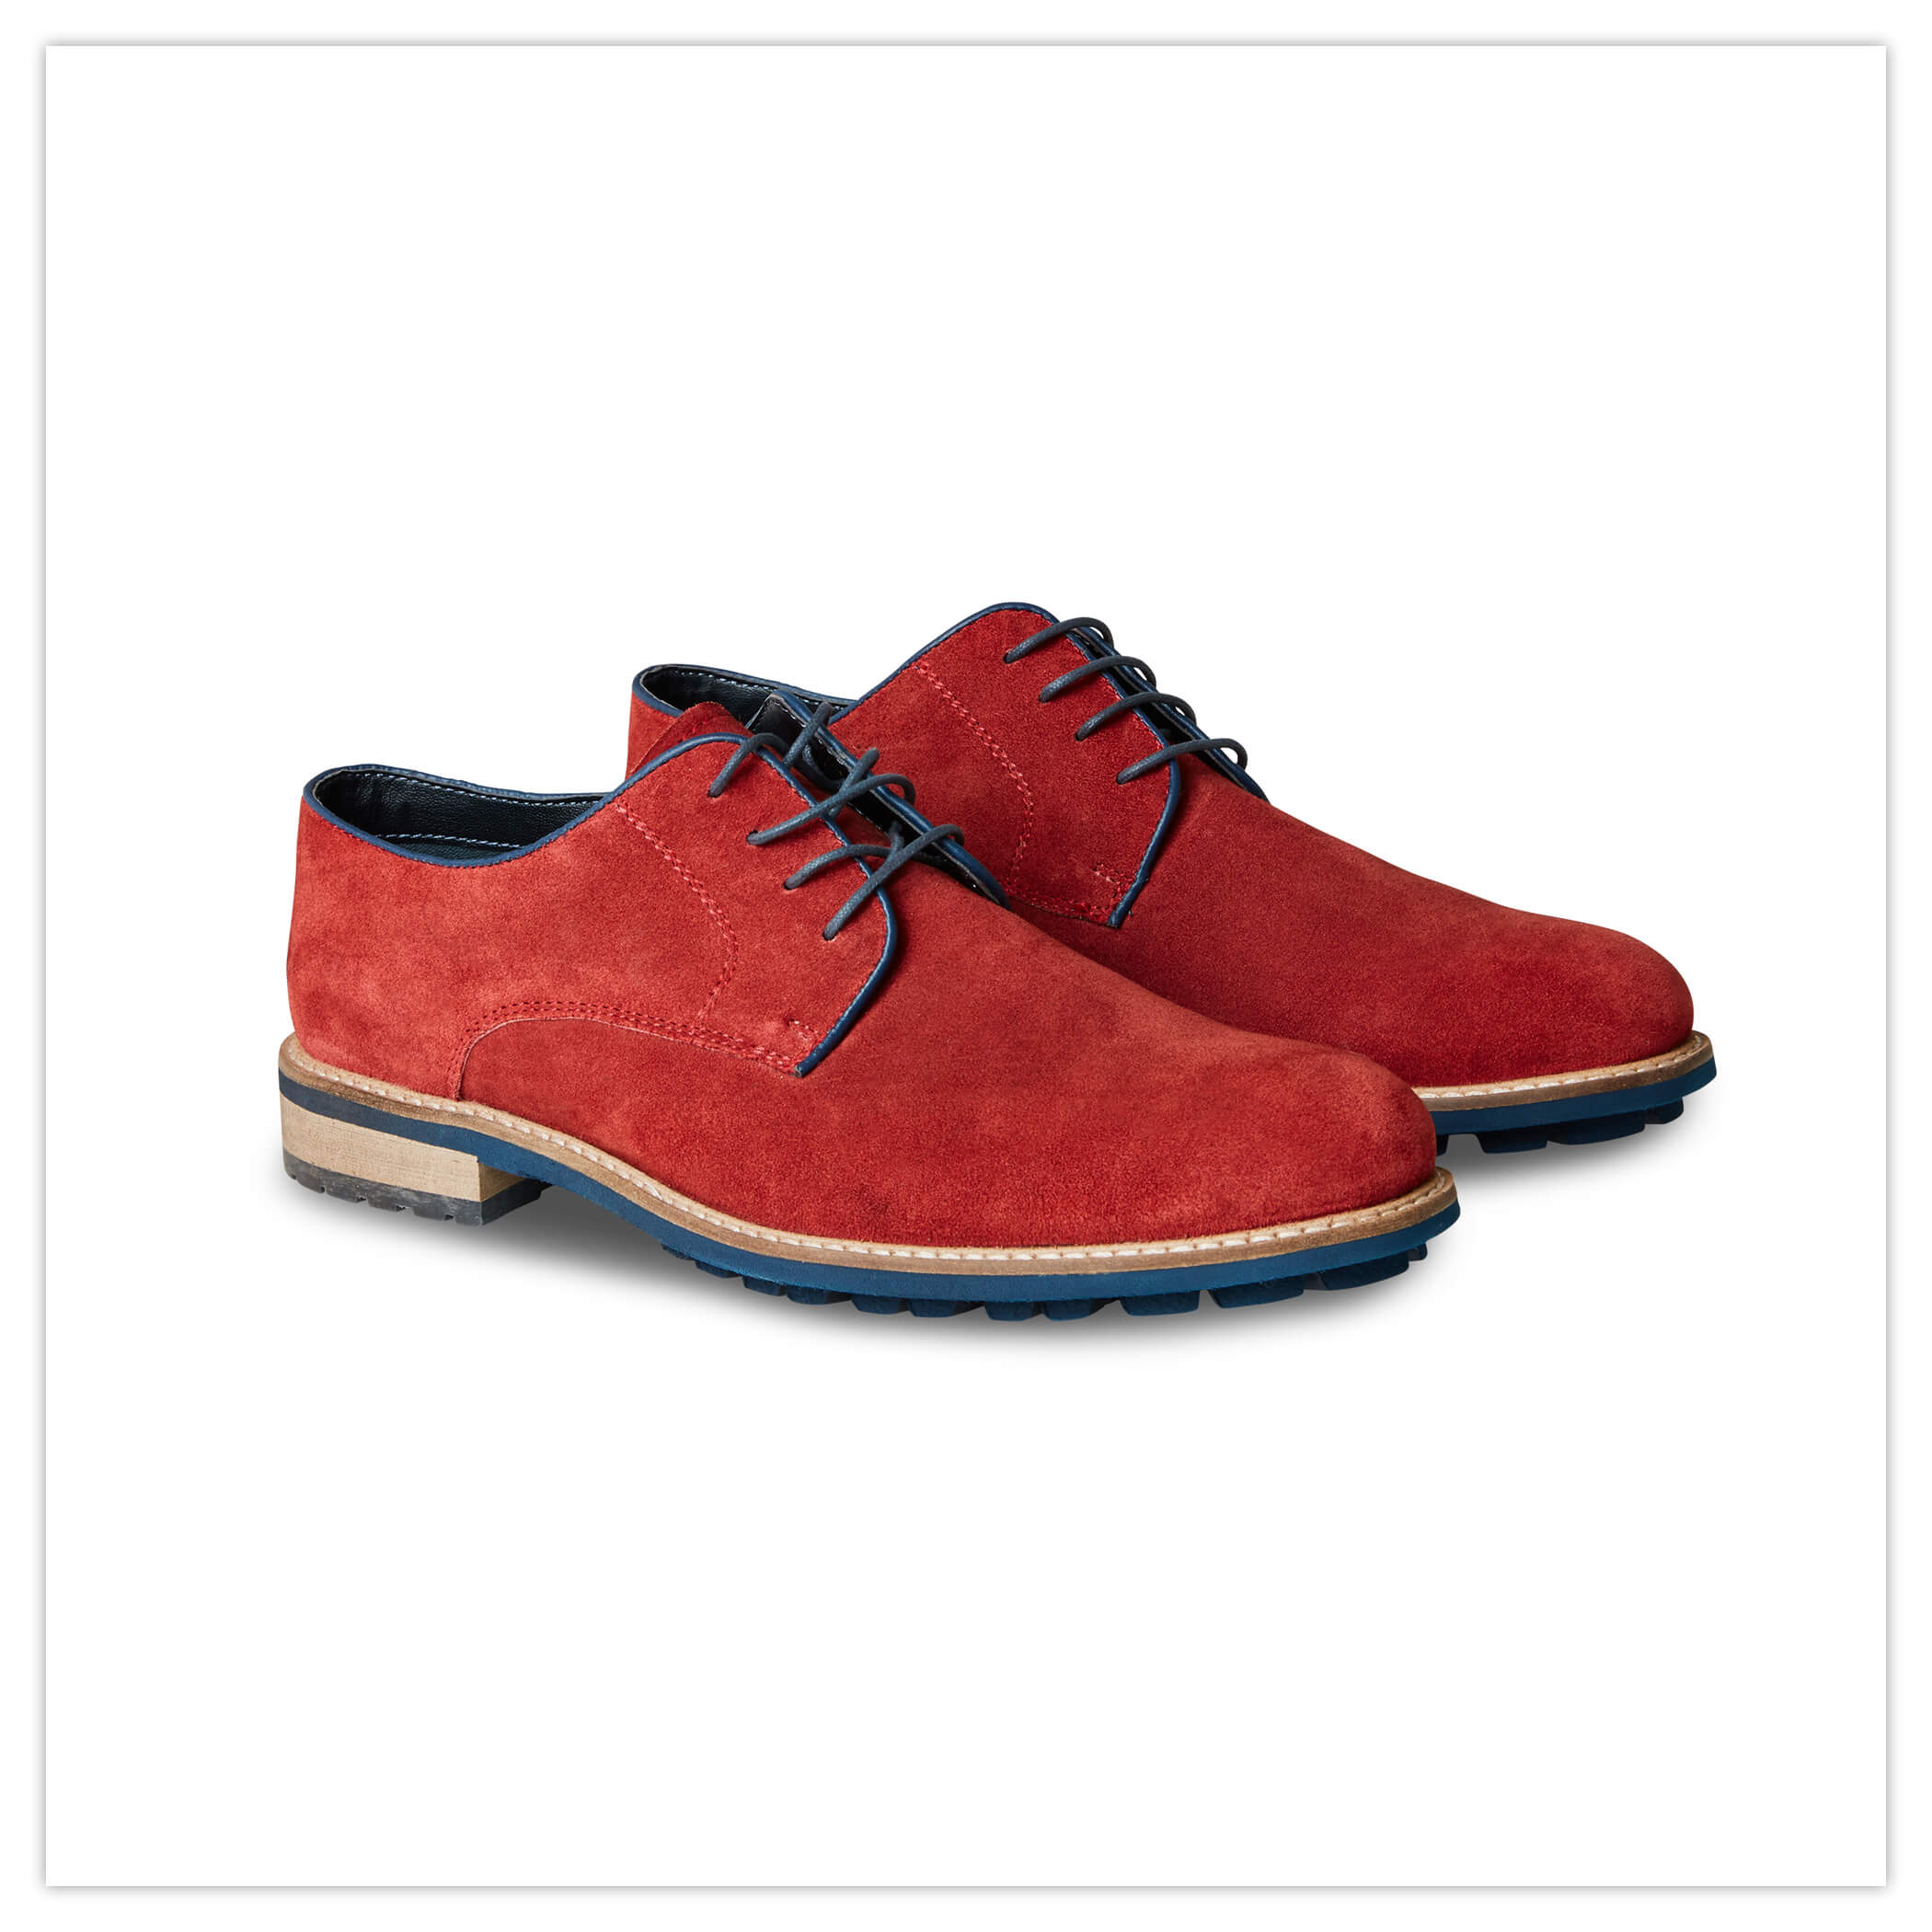 Joe Browns Naples Red Suede Derby Brogues